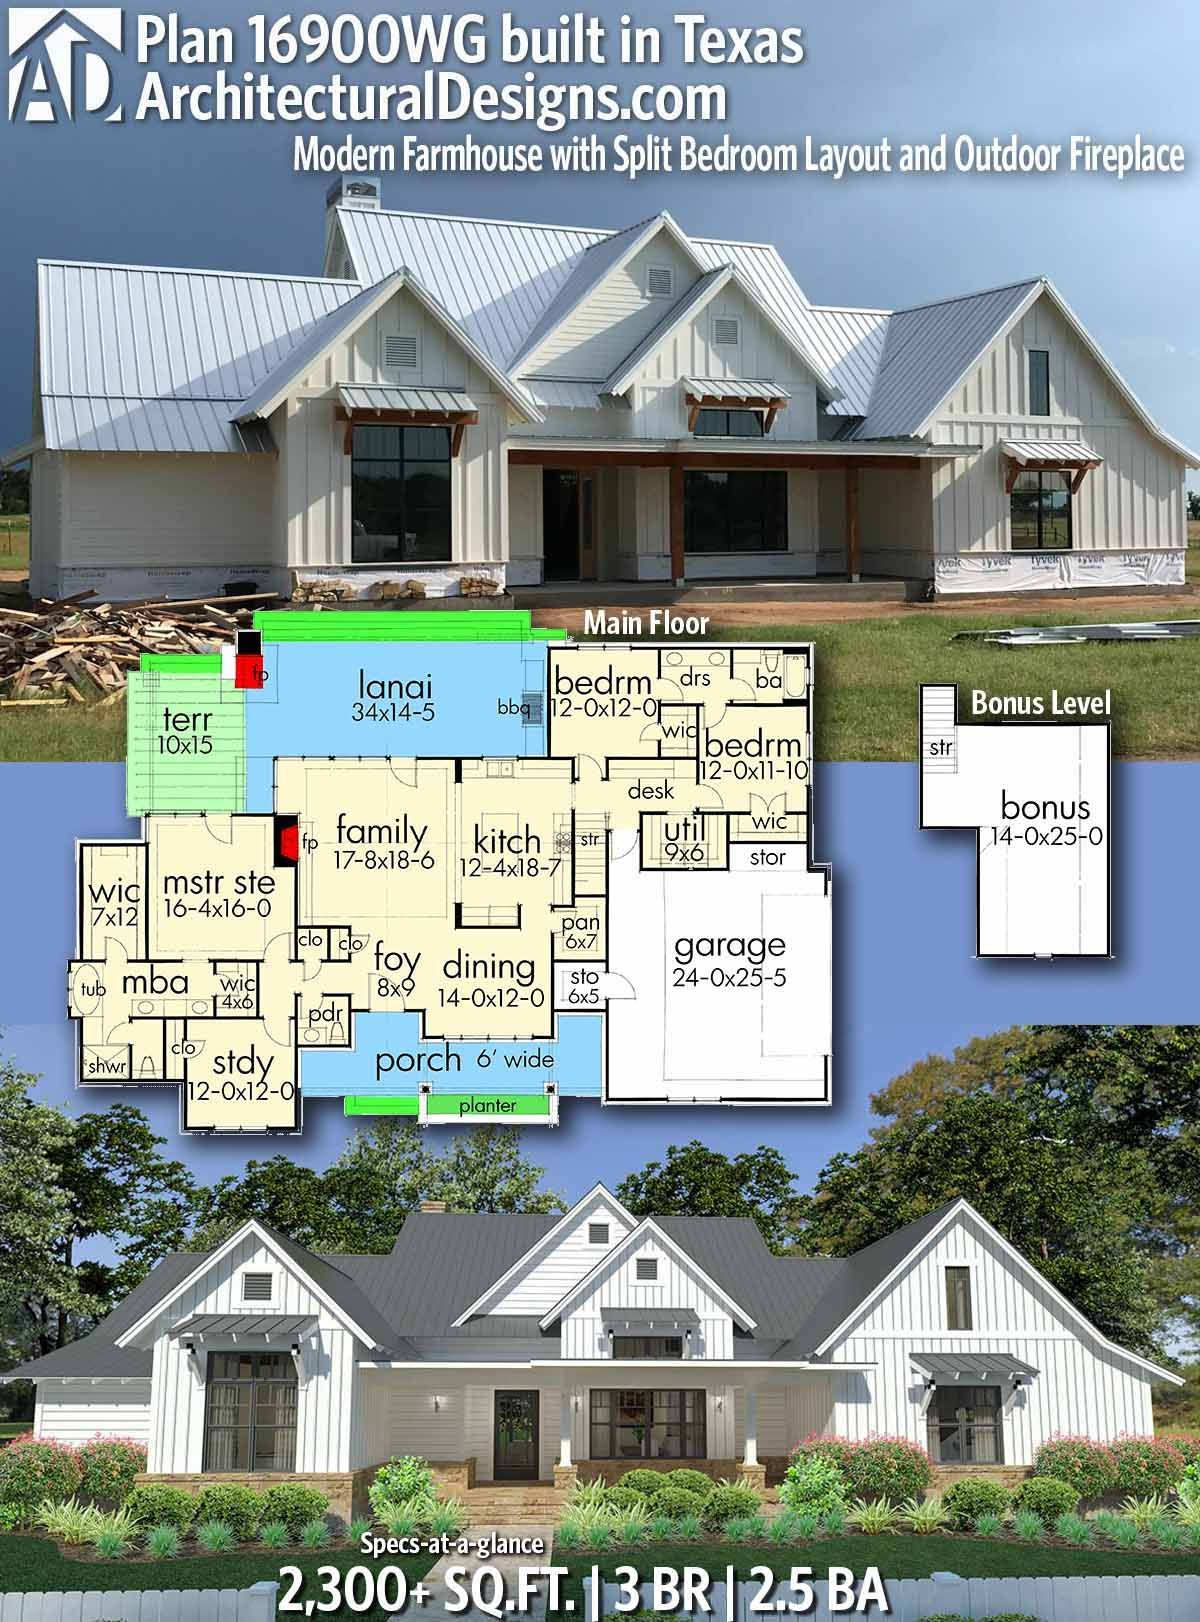 Plan 16900wg Modern Farmhouse With Split Bedroom Layout And Outdoor Fireplace In 2020 Farmhouse Plans House Plans Bedroom Layouts